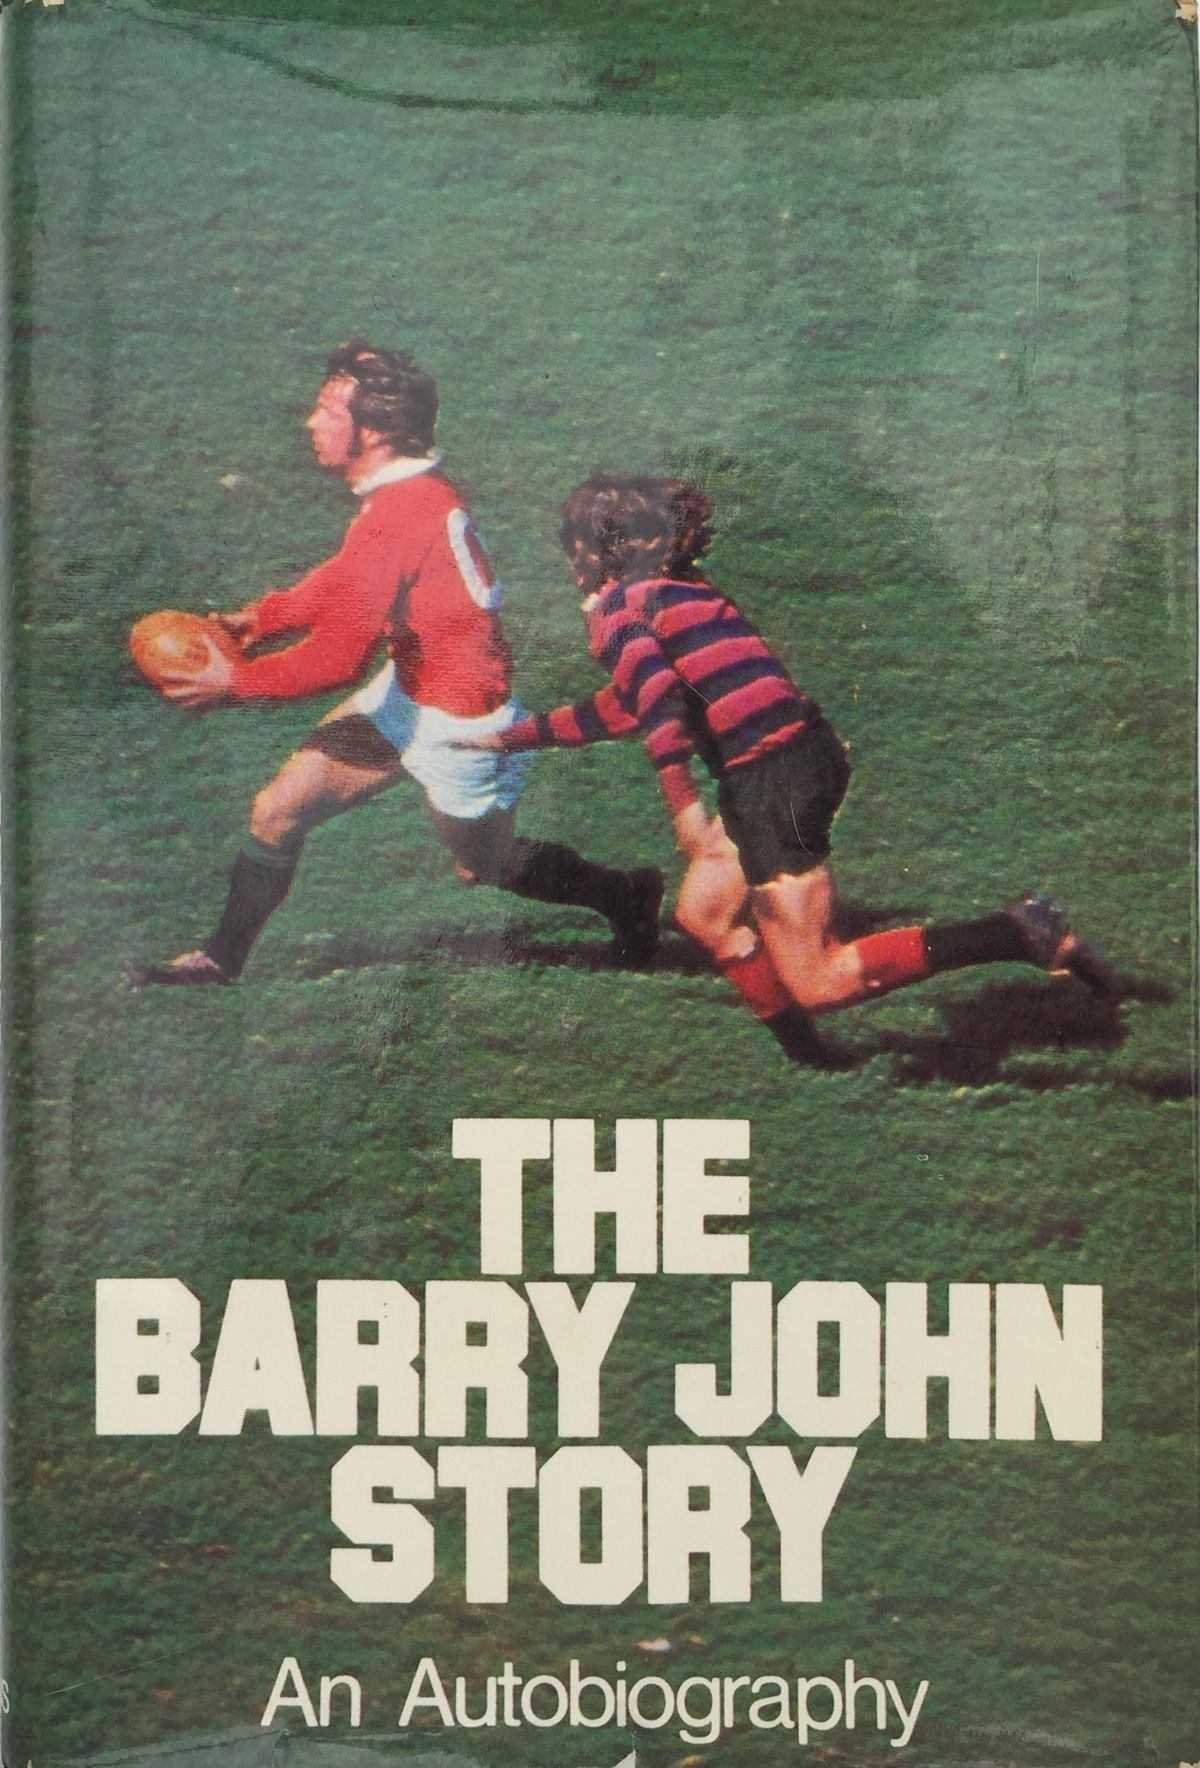 The Barry John Story